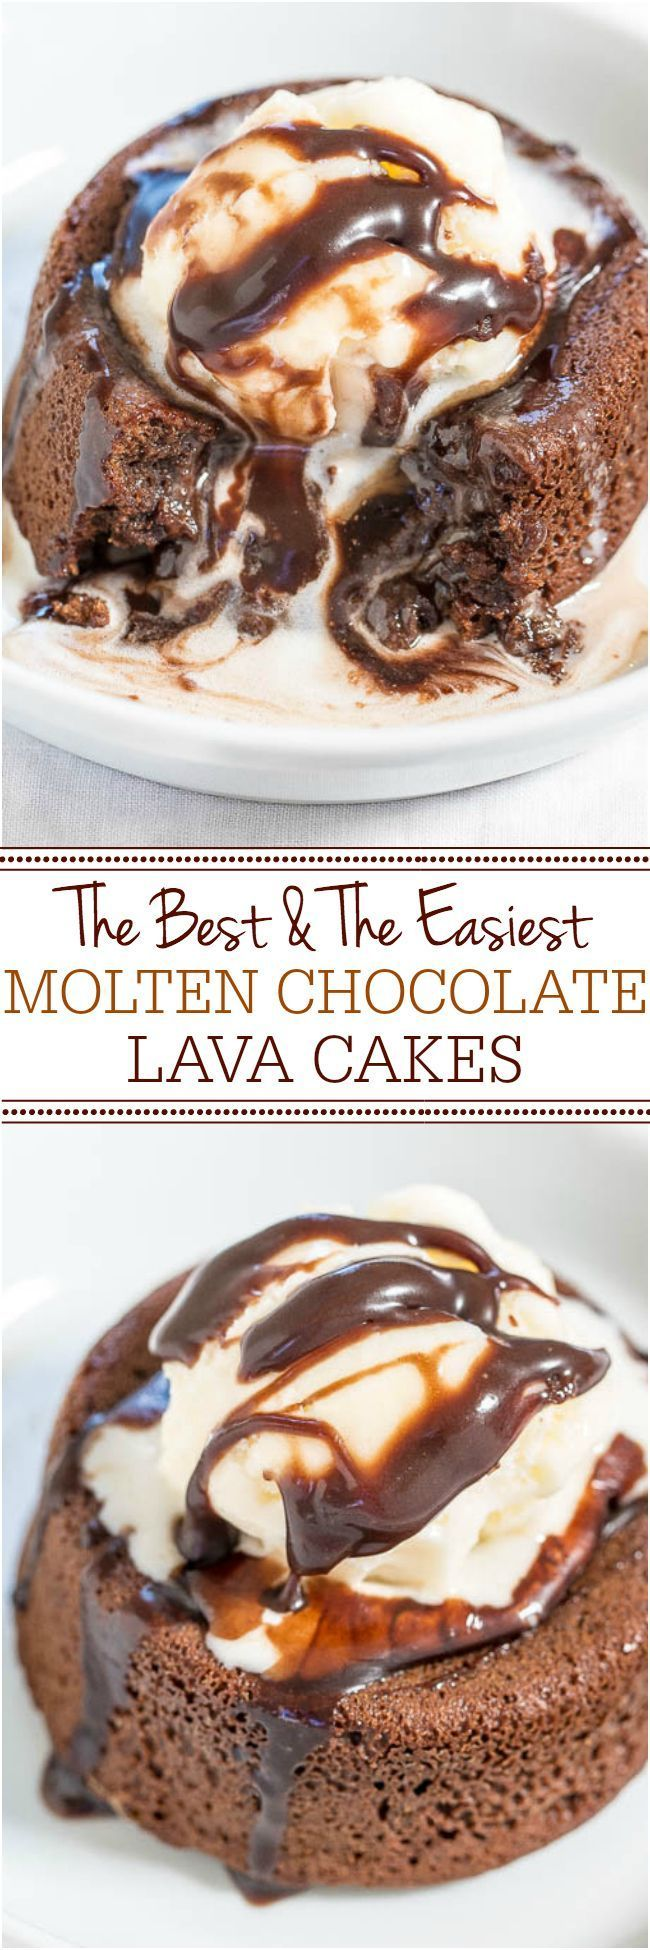 The Best and The Easiest Molten Chocolate Lava Cakes - One bowl, no mixer, so easy! The warm, gooey, fudgy chocolate center is heavenly! Better than any restaurant versions! Best chocolate cake EVER!!